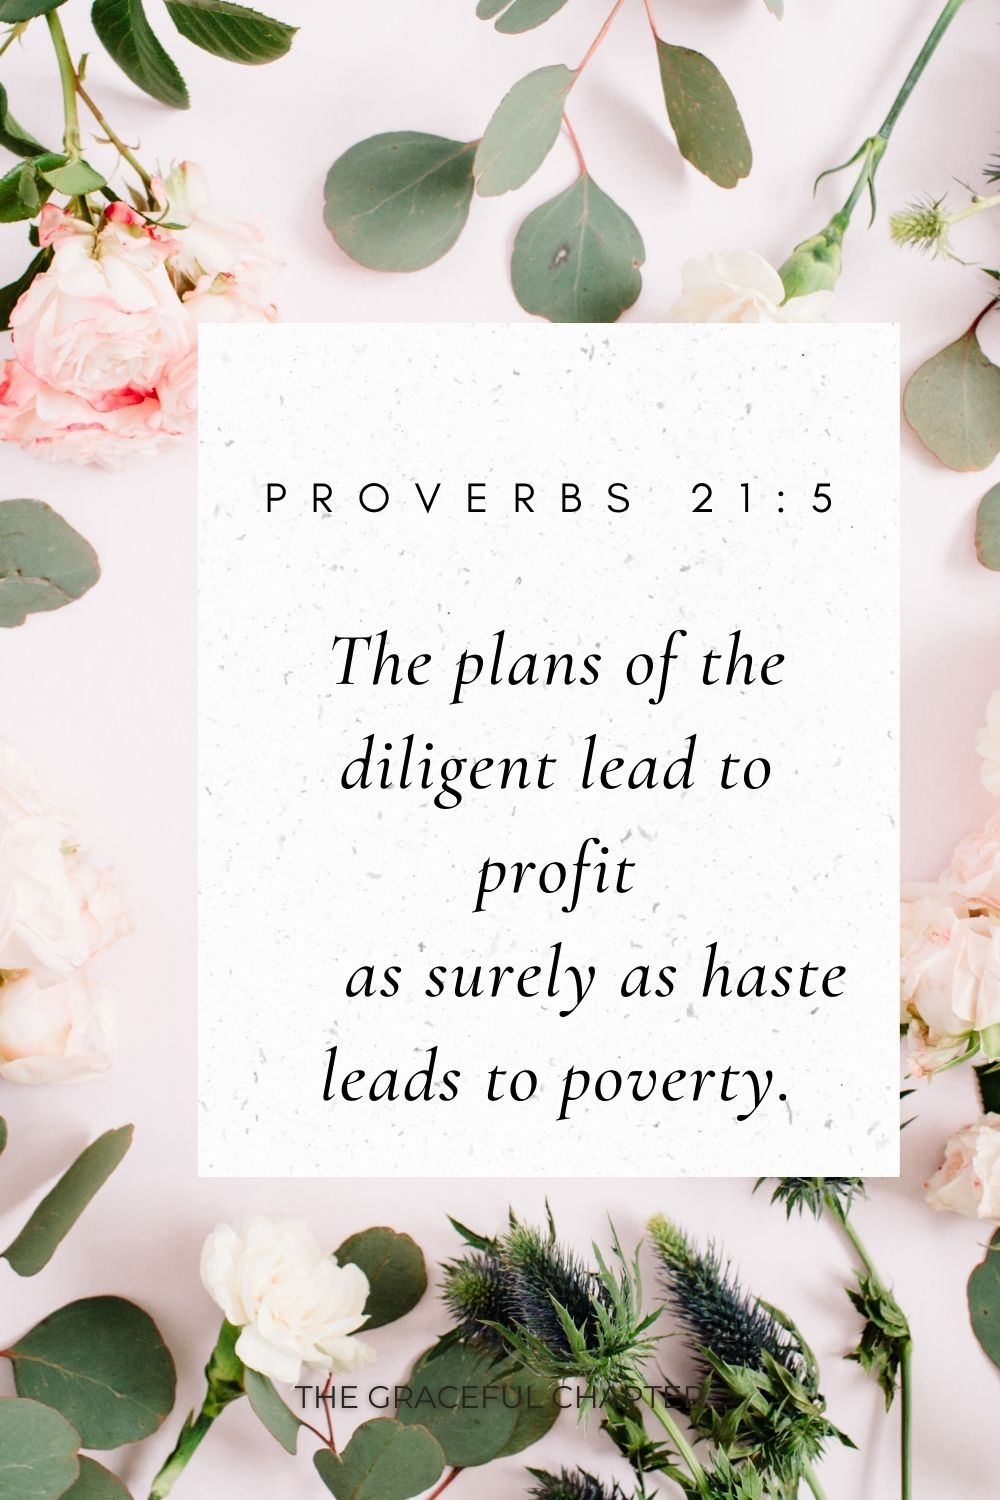 The plans of the diligent lead to profit     as surely as haste leads to poverty. Proverbs 21:5